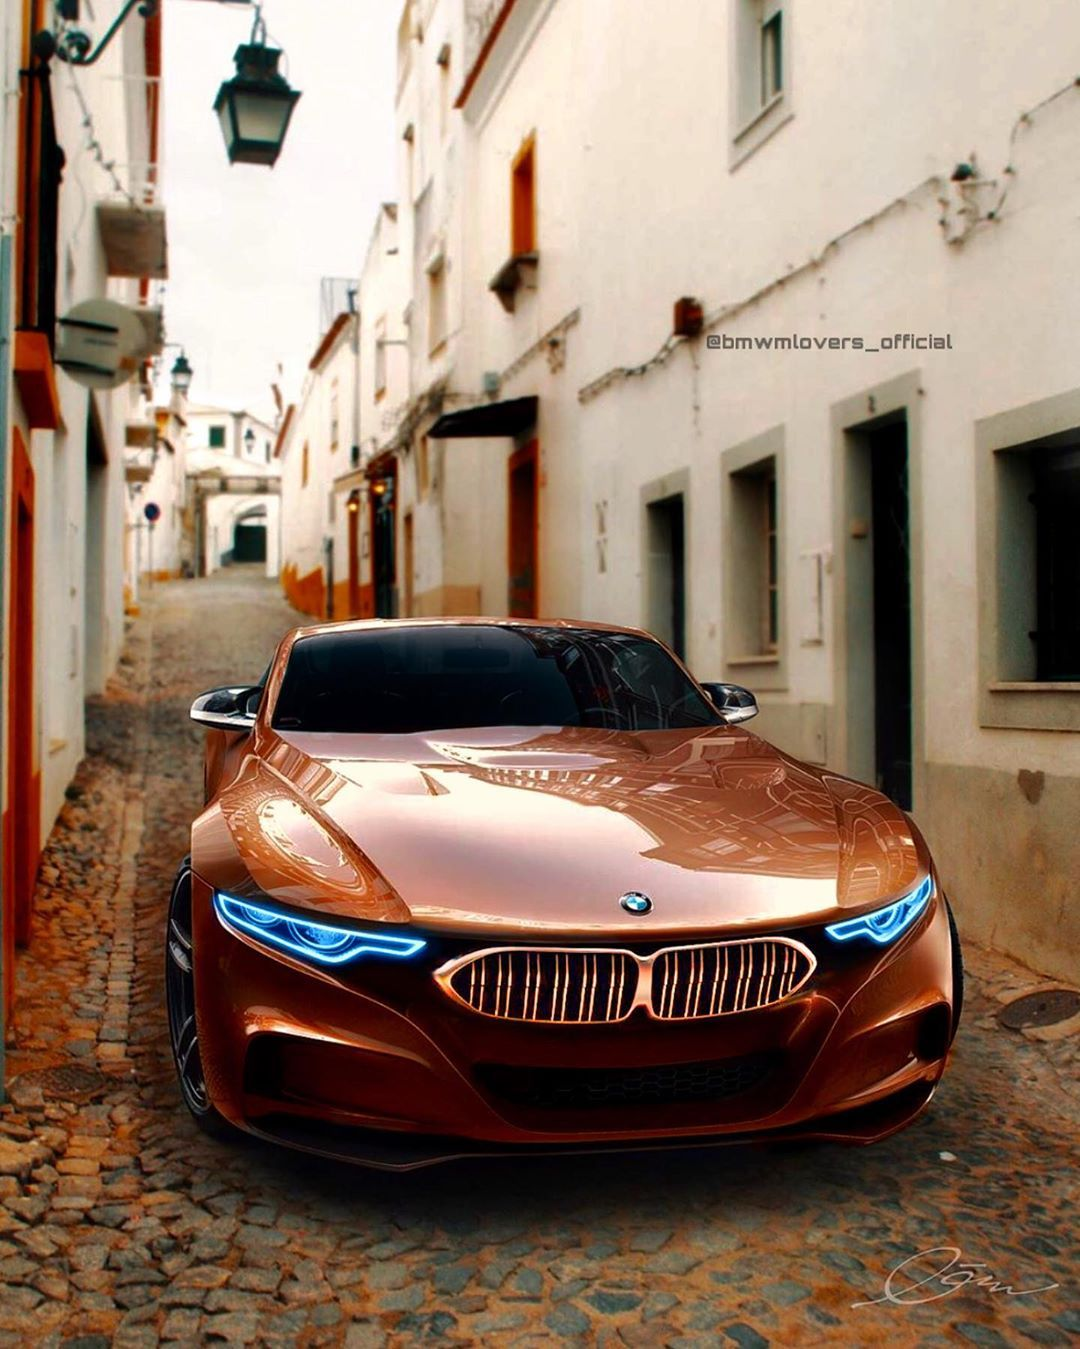 Click On The Picture For More Real Or Fake Comment Follow Bmwmlovers Official By Bmwmlovers Official Bm Bmw Bmw Classic Cars Super Luxury Cars